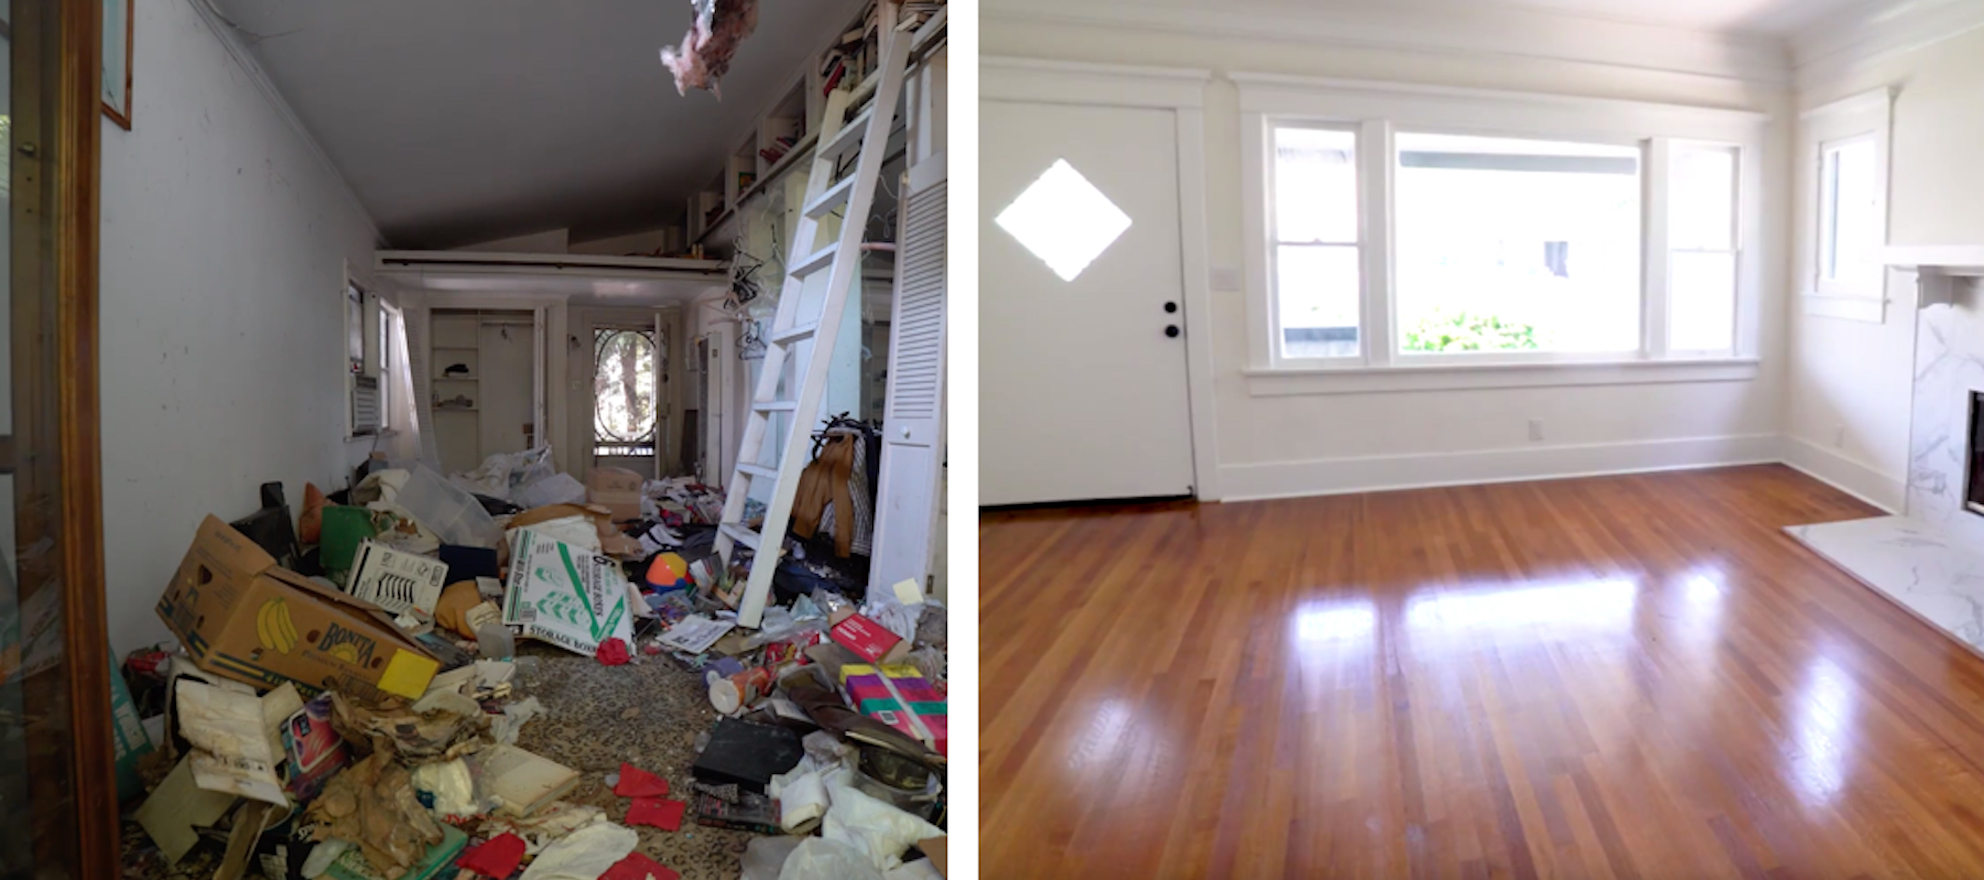 Fundrise wants to turn distressed homes into accessible investments